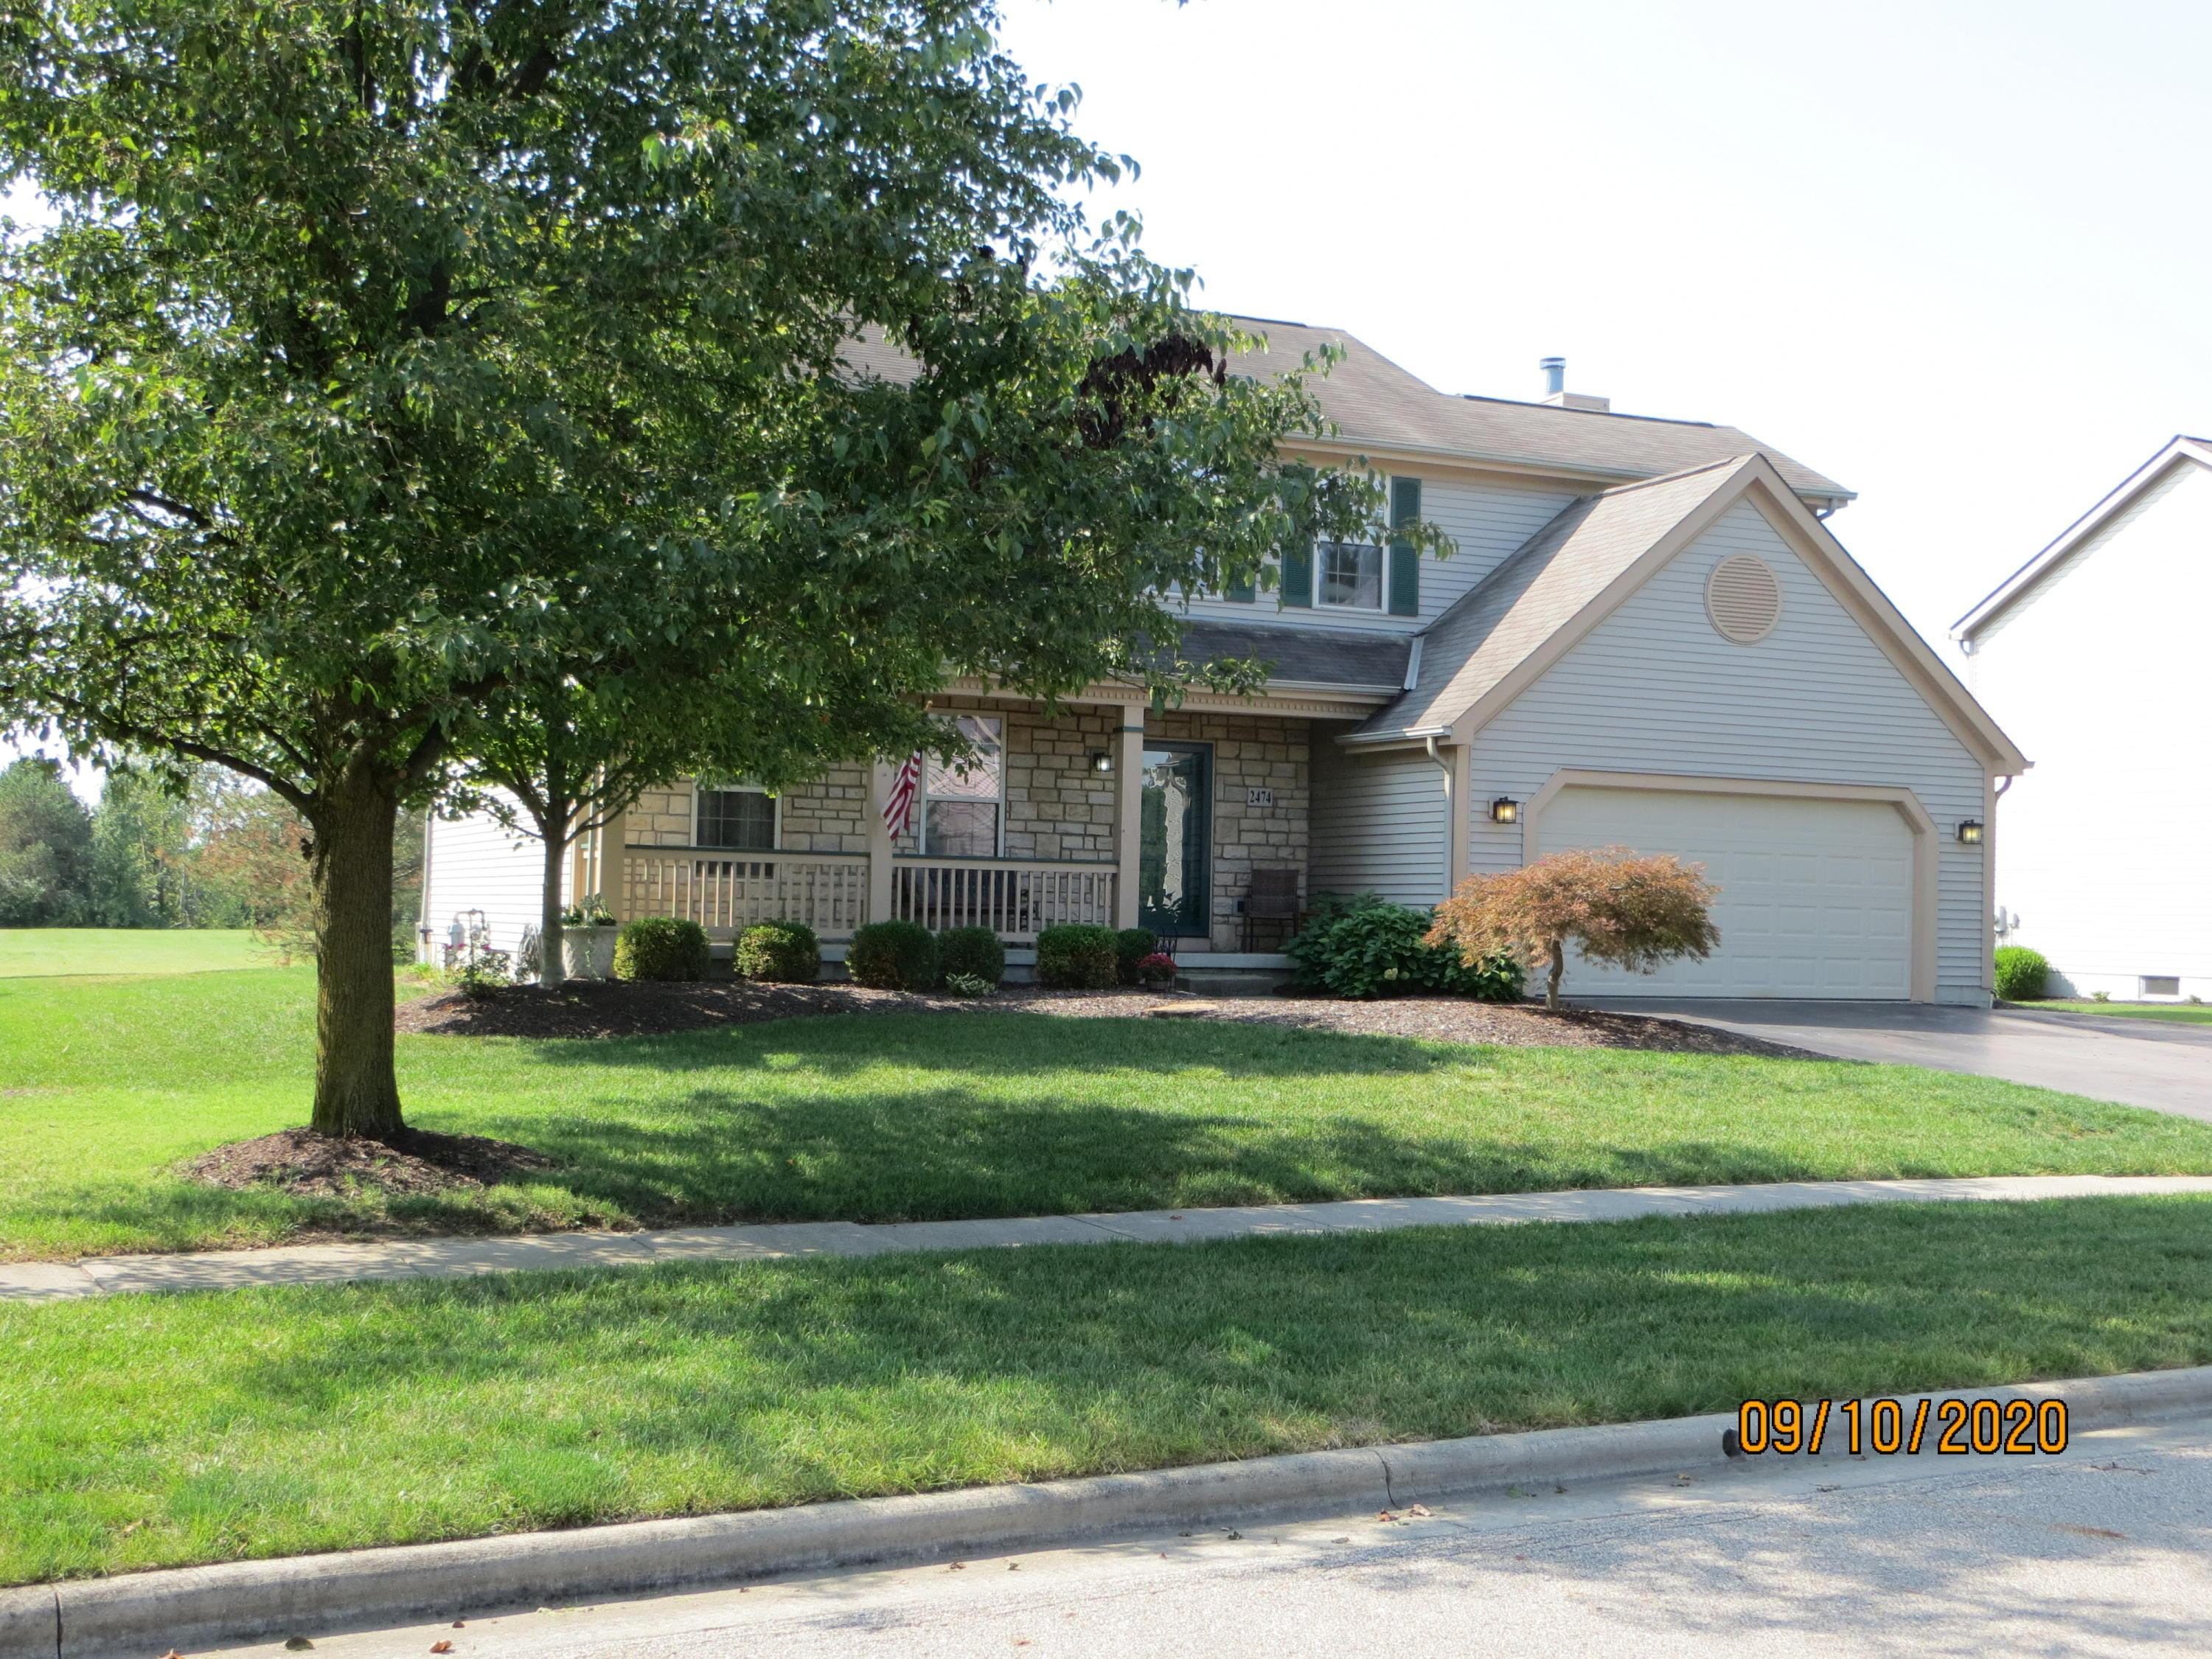 2474 Tulane Court, Lewis Center, Ohio 43035, 4 Bedrooms Bedrooms, ,3 BathroomsBathrooms,Residential,For Sale,Tulane,220031571